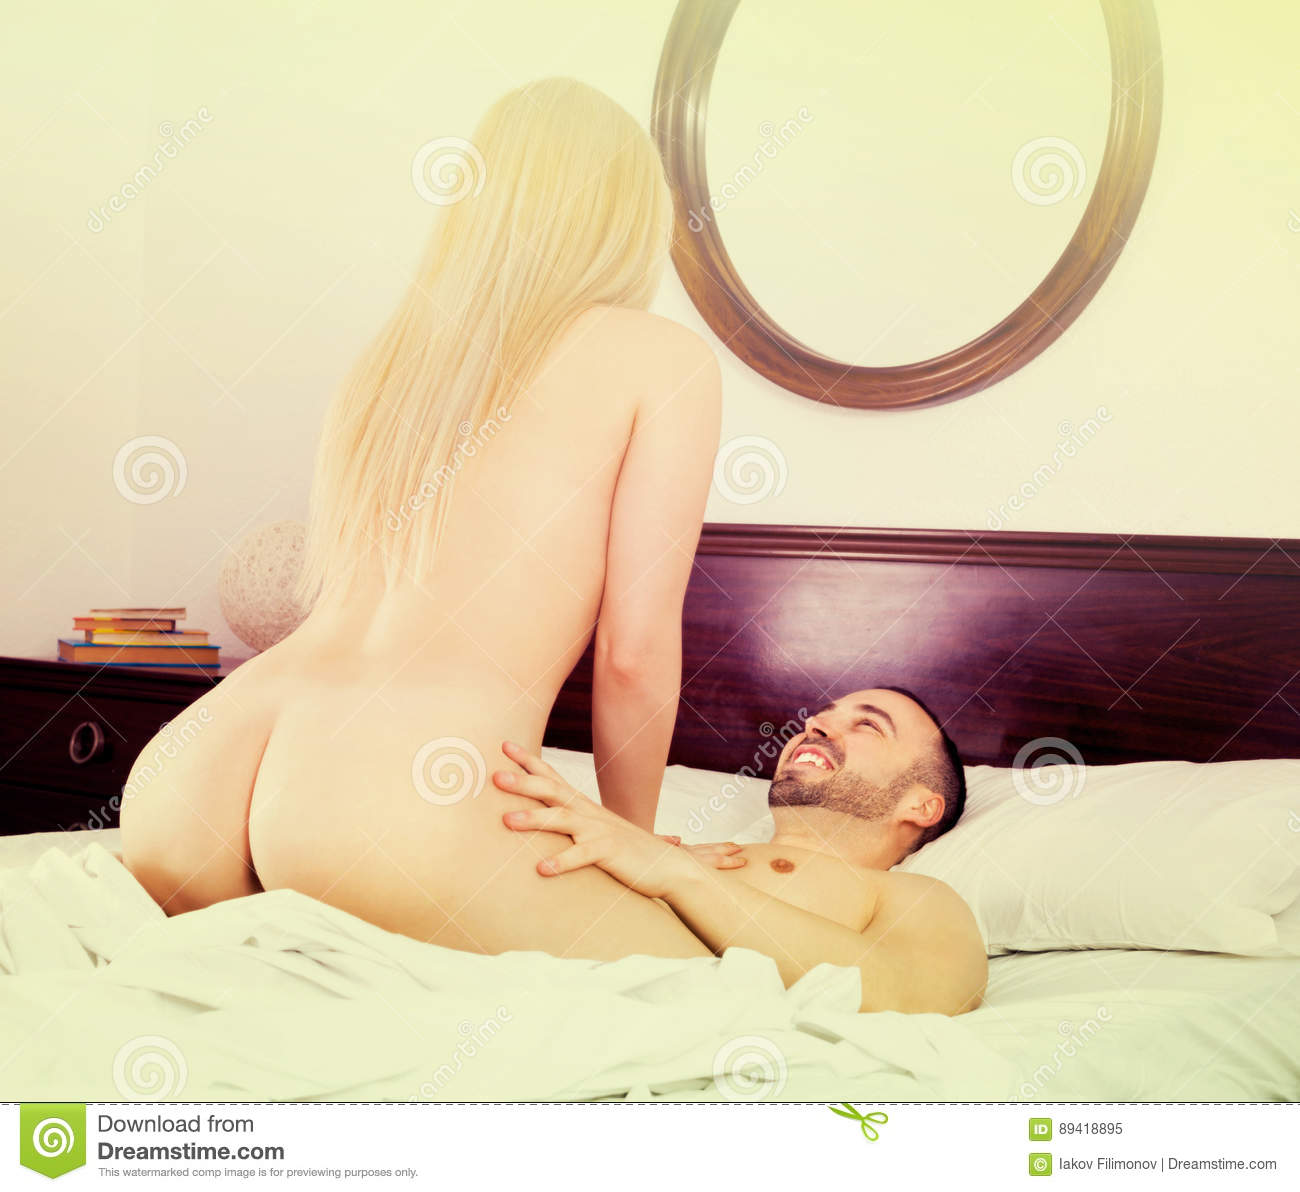 Hot images of nude couple having sex